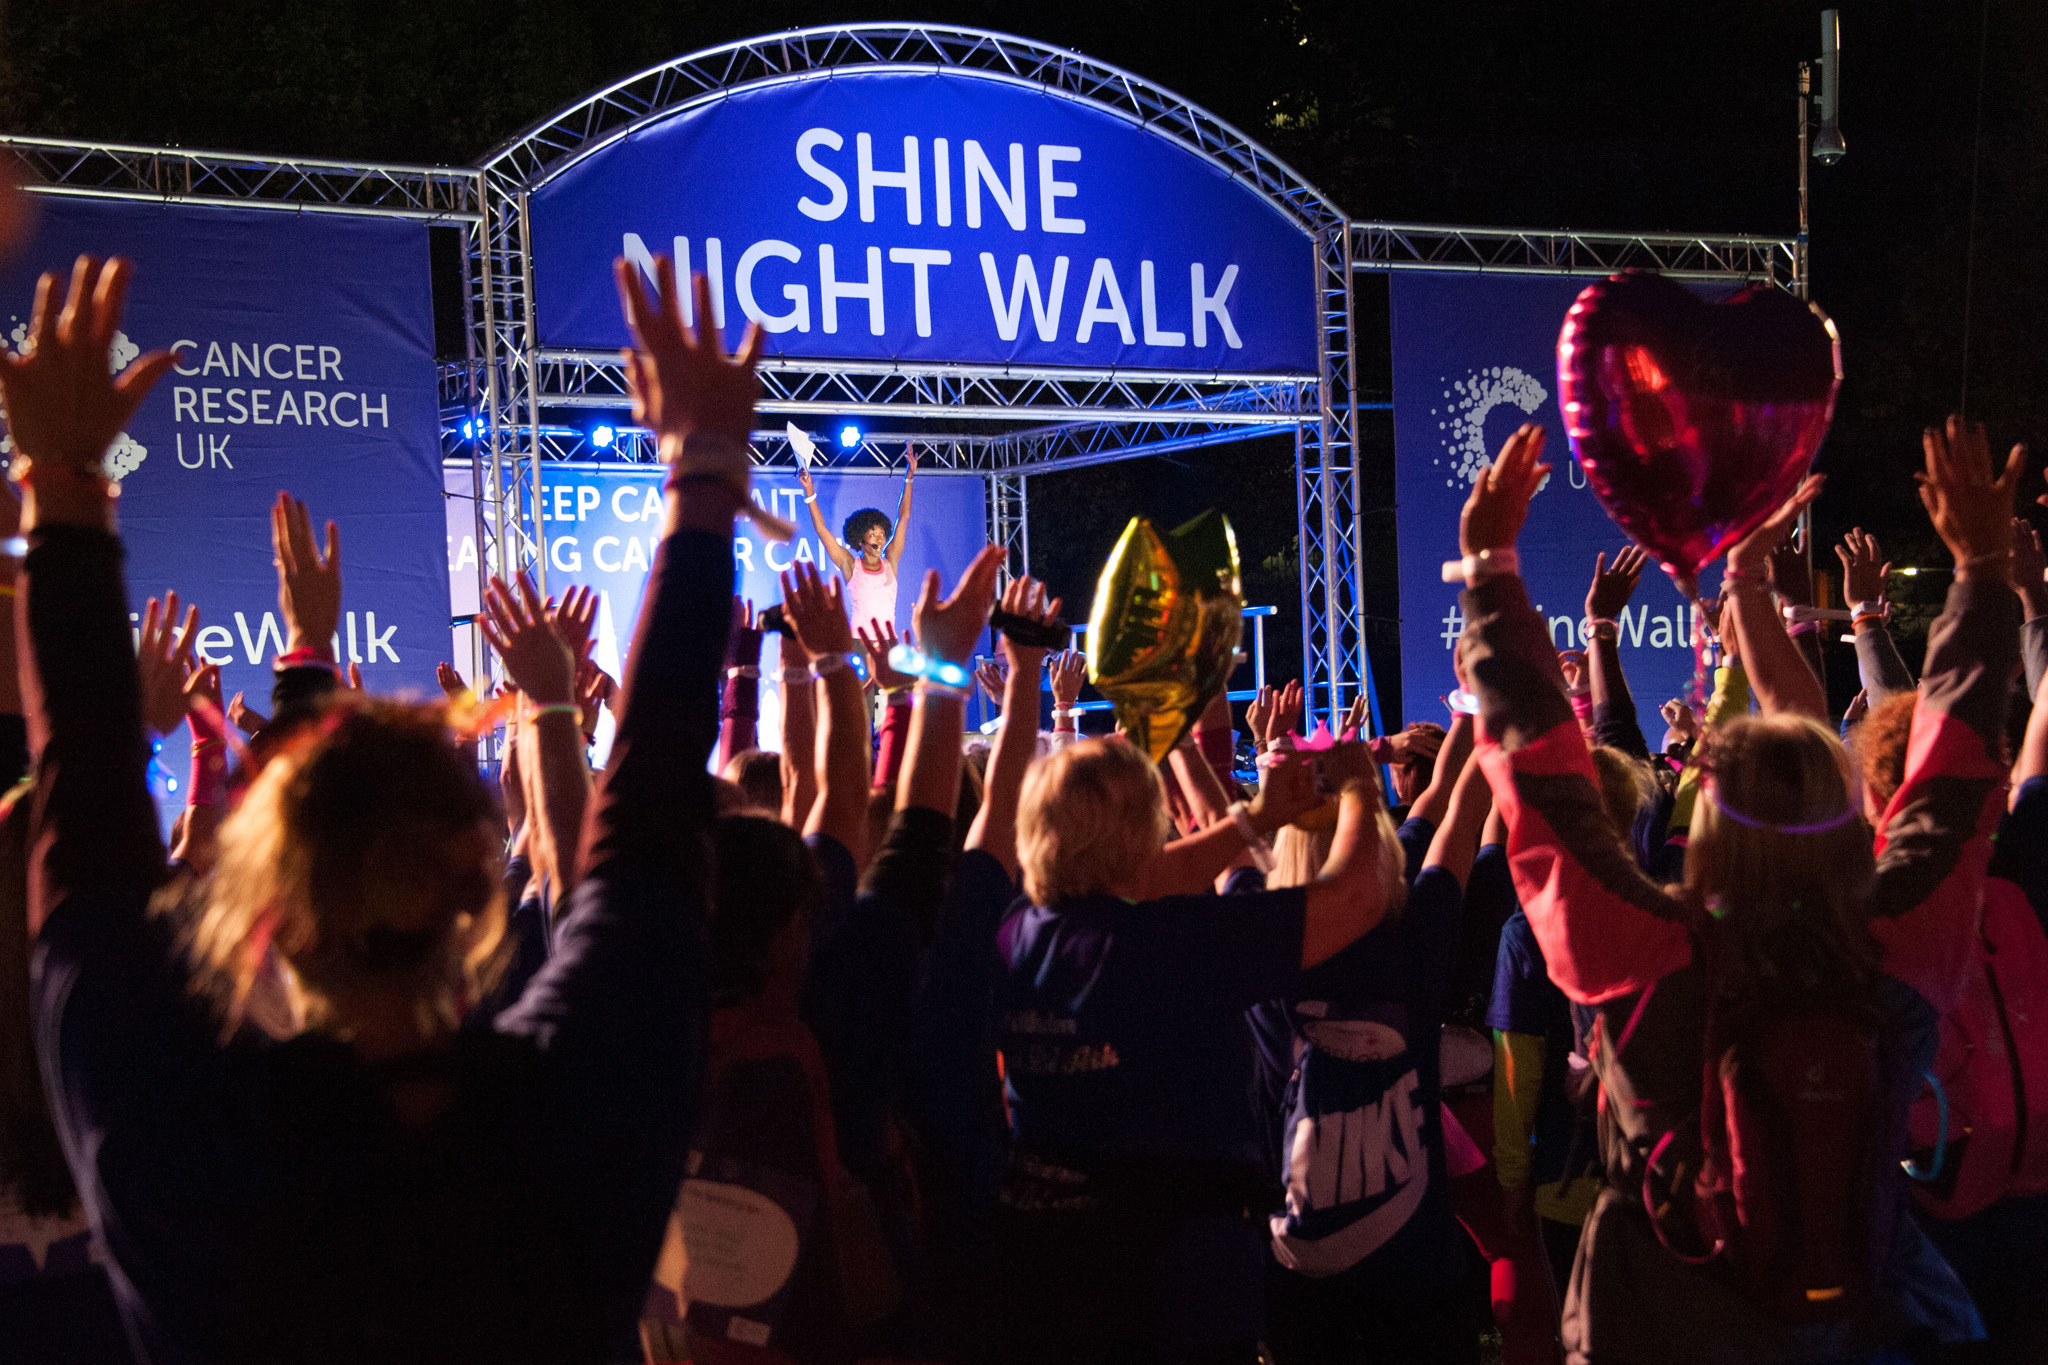 Your time to Shine in the fight against cancer